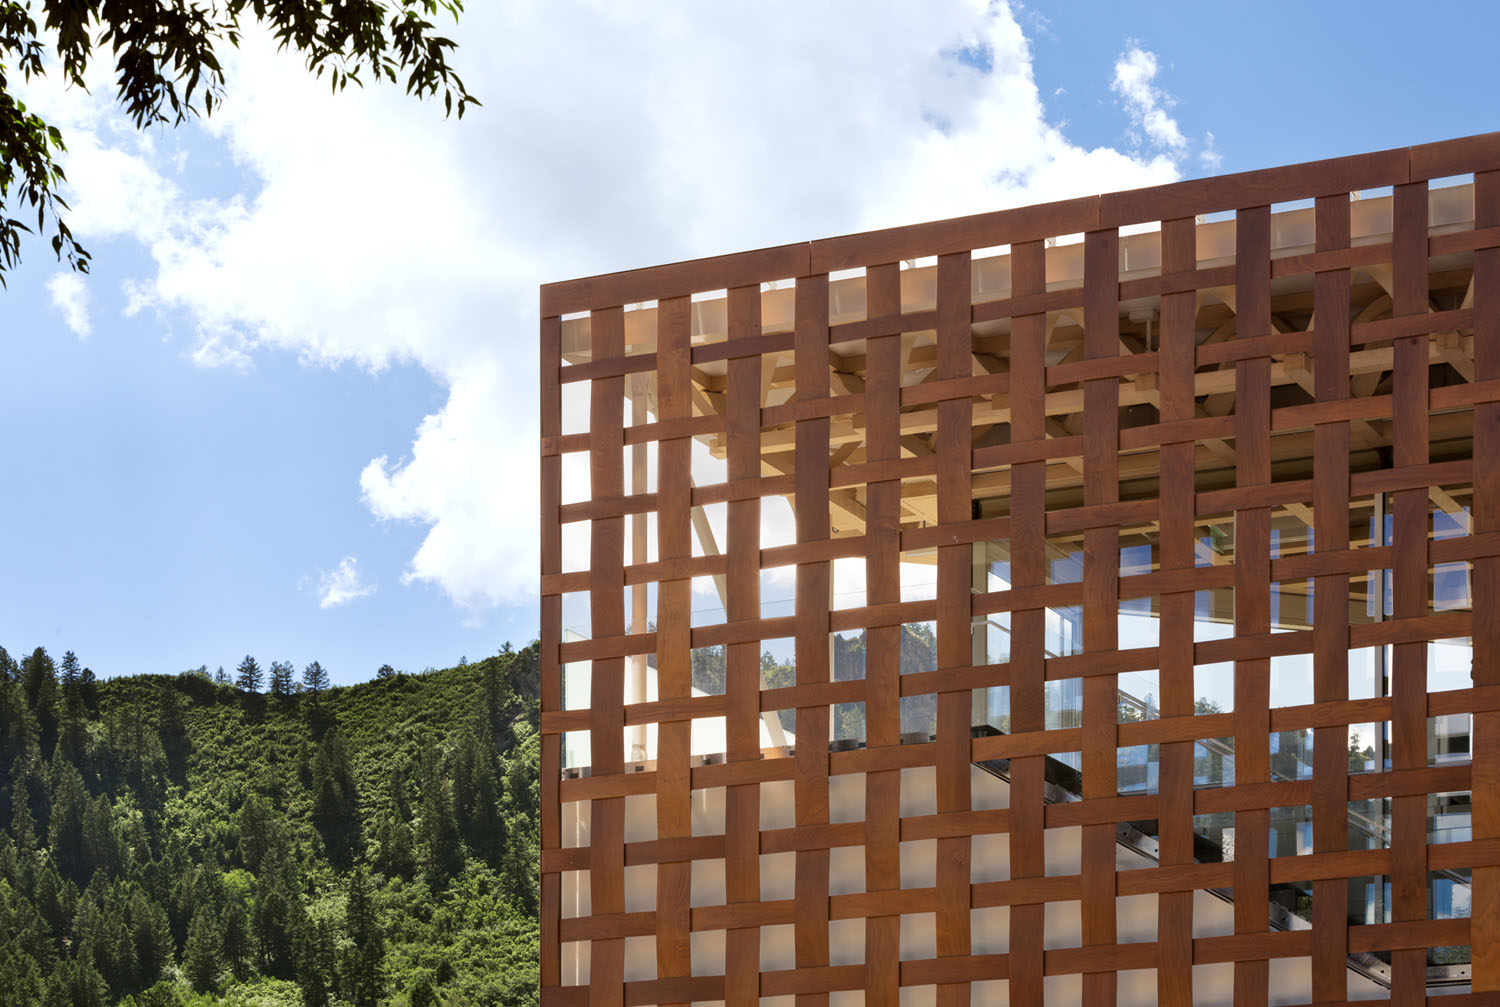 mm_Aspen Art Museum design by Shigeru Ban Architects_05